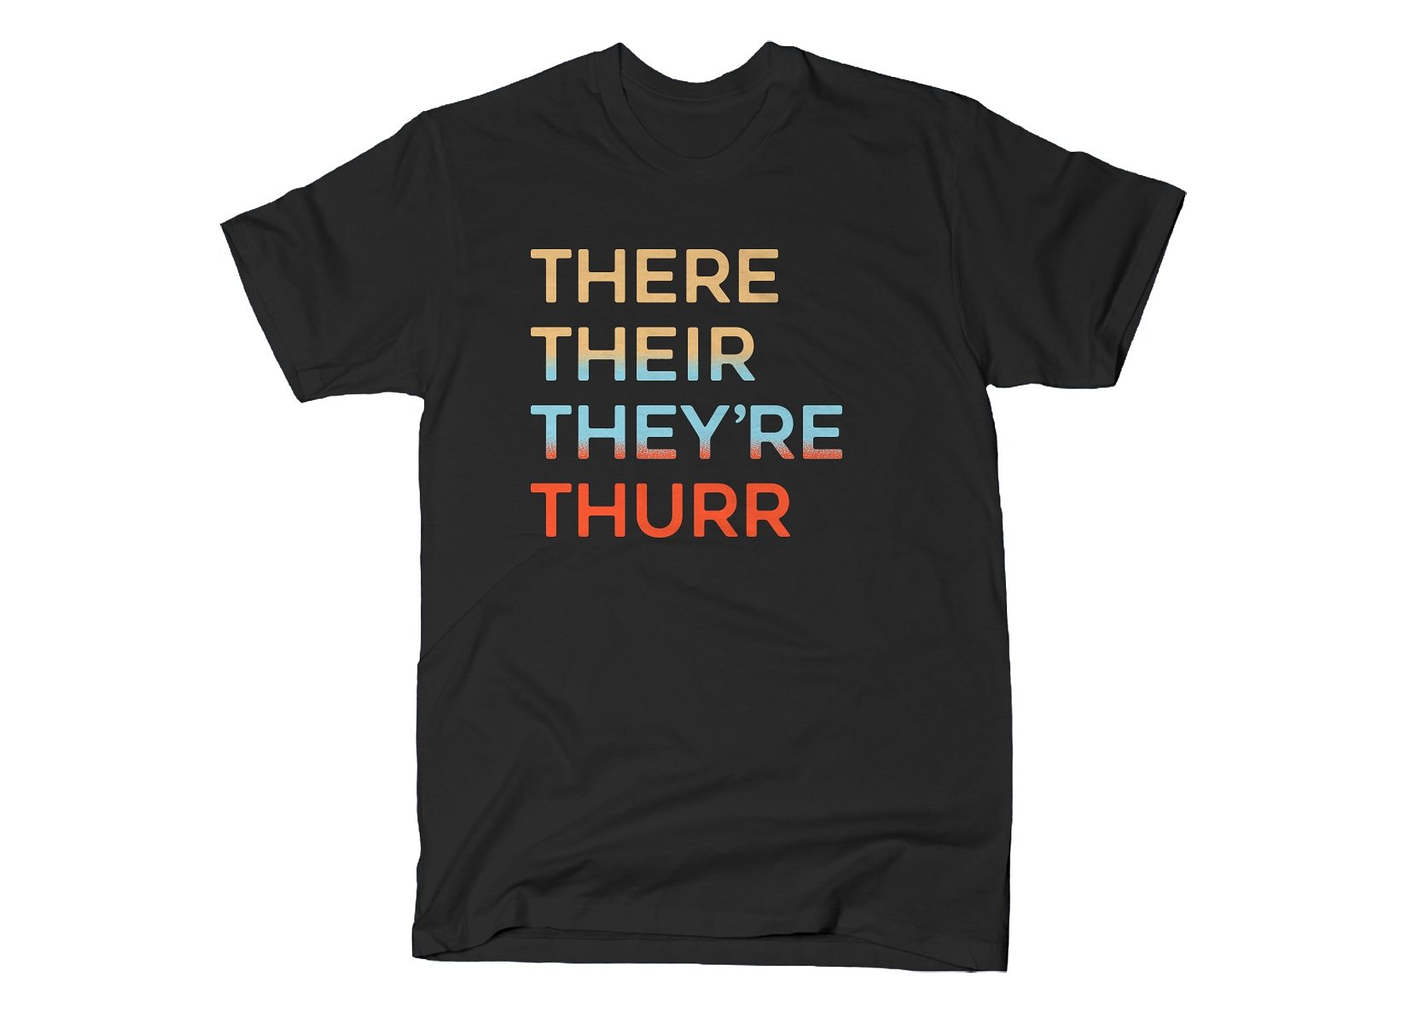 SnorgTees: There Their They're Thurr